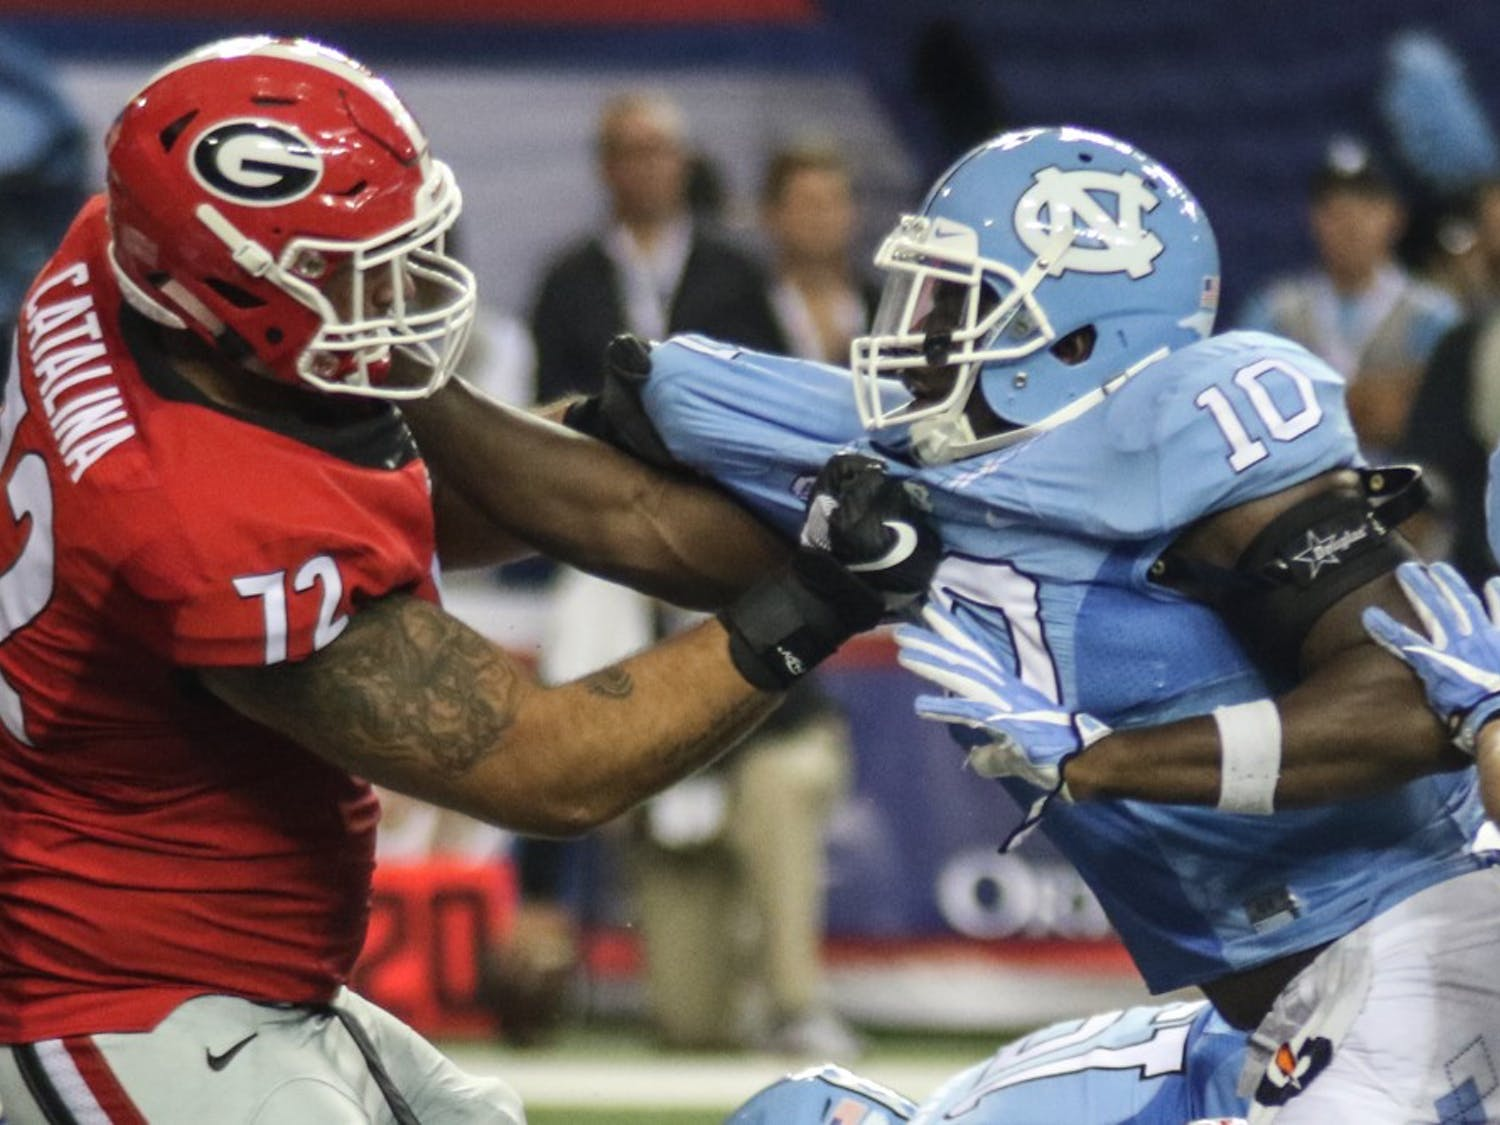 The UNC football team lost to Georgia 33-24 in the Chick-fil-A Kickoff game in the Georgia Domein Atlanta on Saturday.